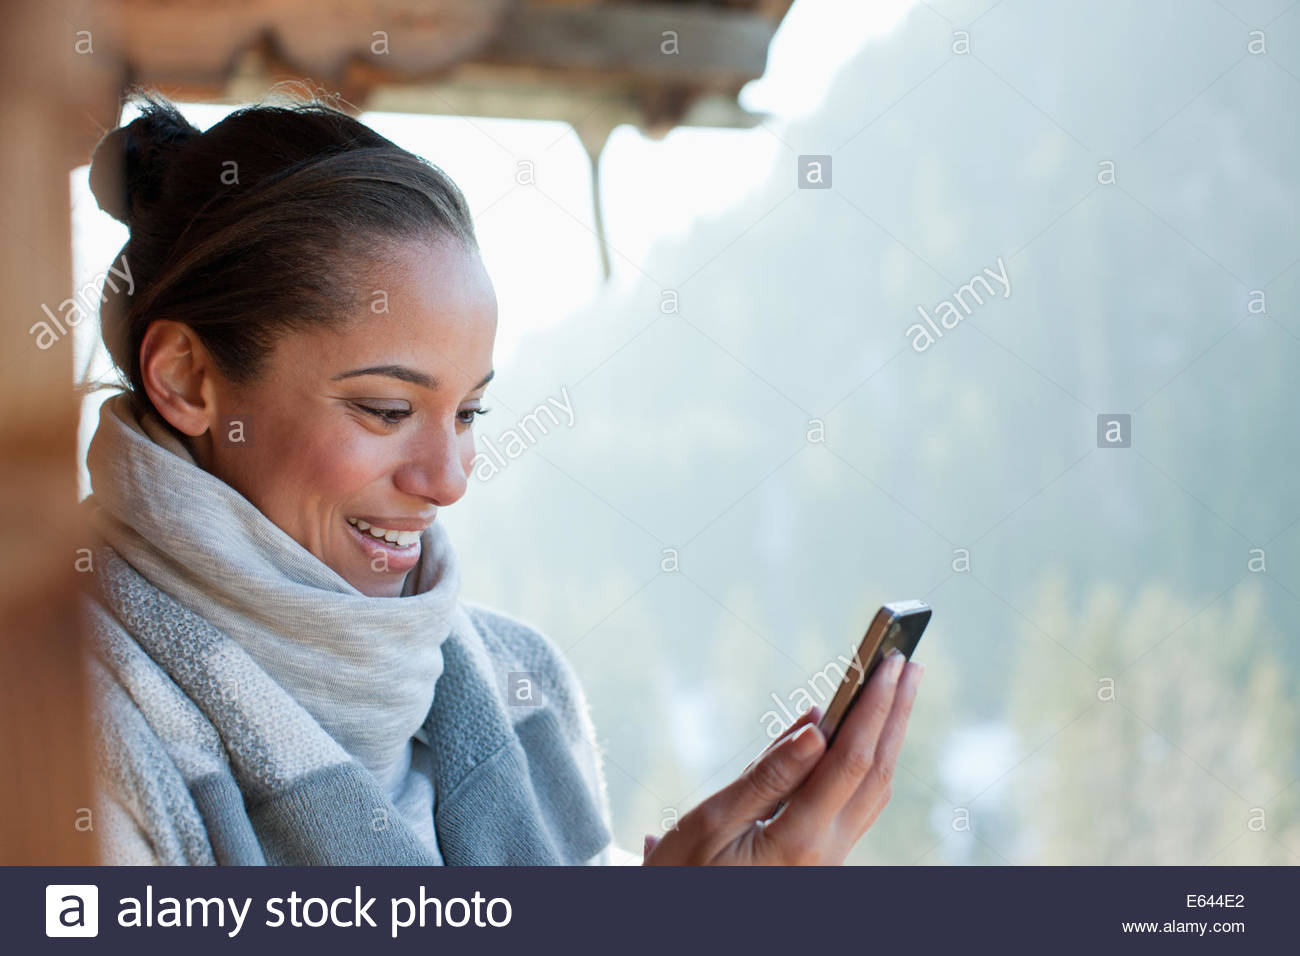 Smiling woman checking cell phone on cabin porch - Stock Image